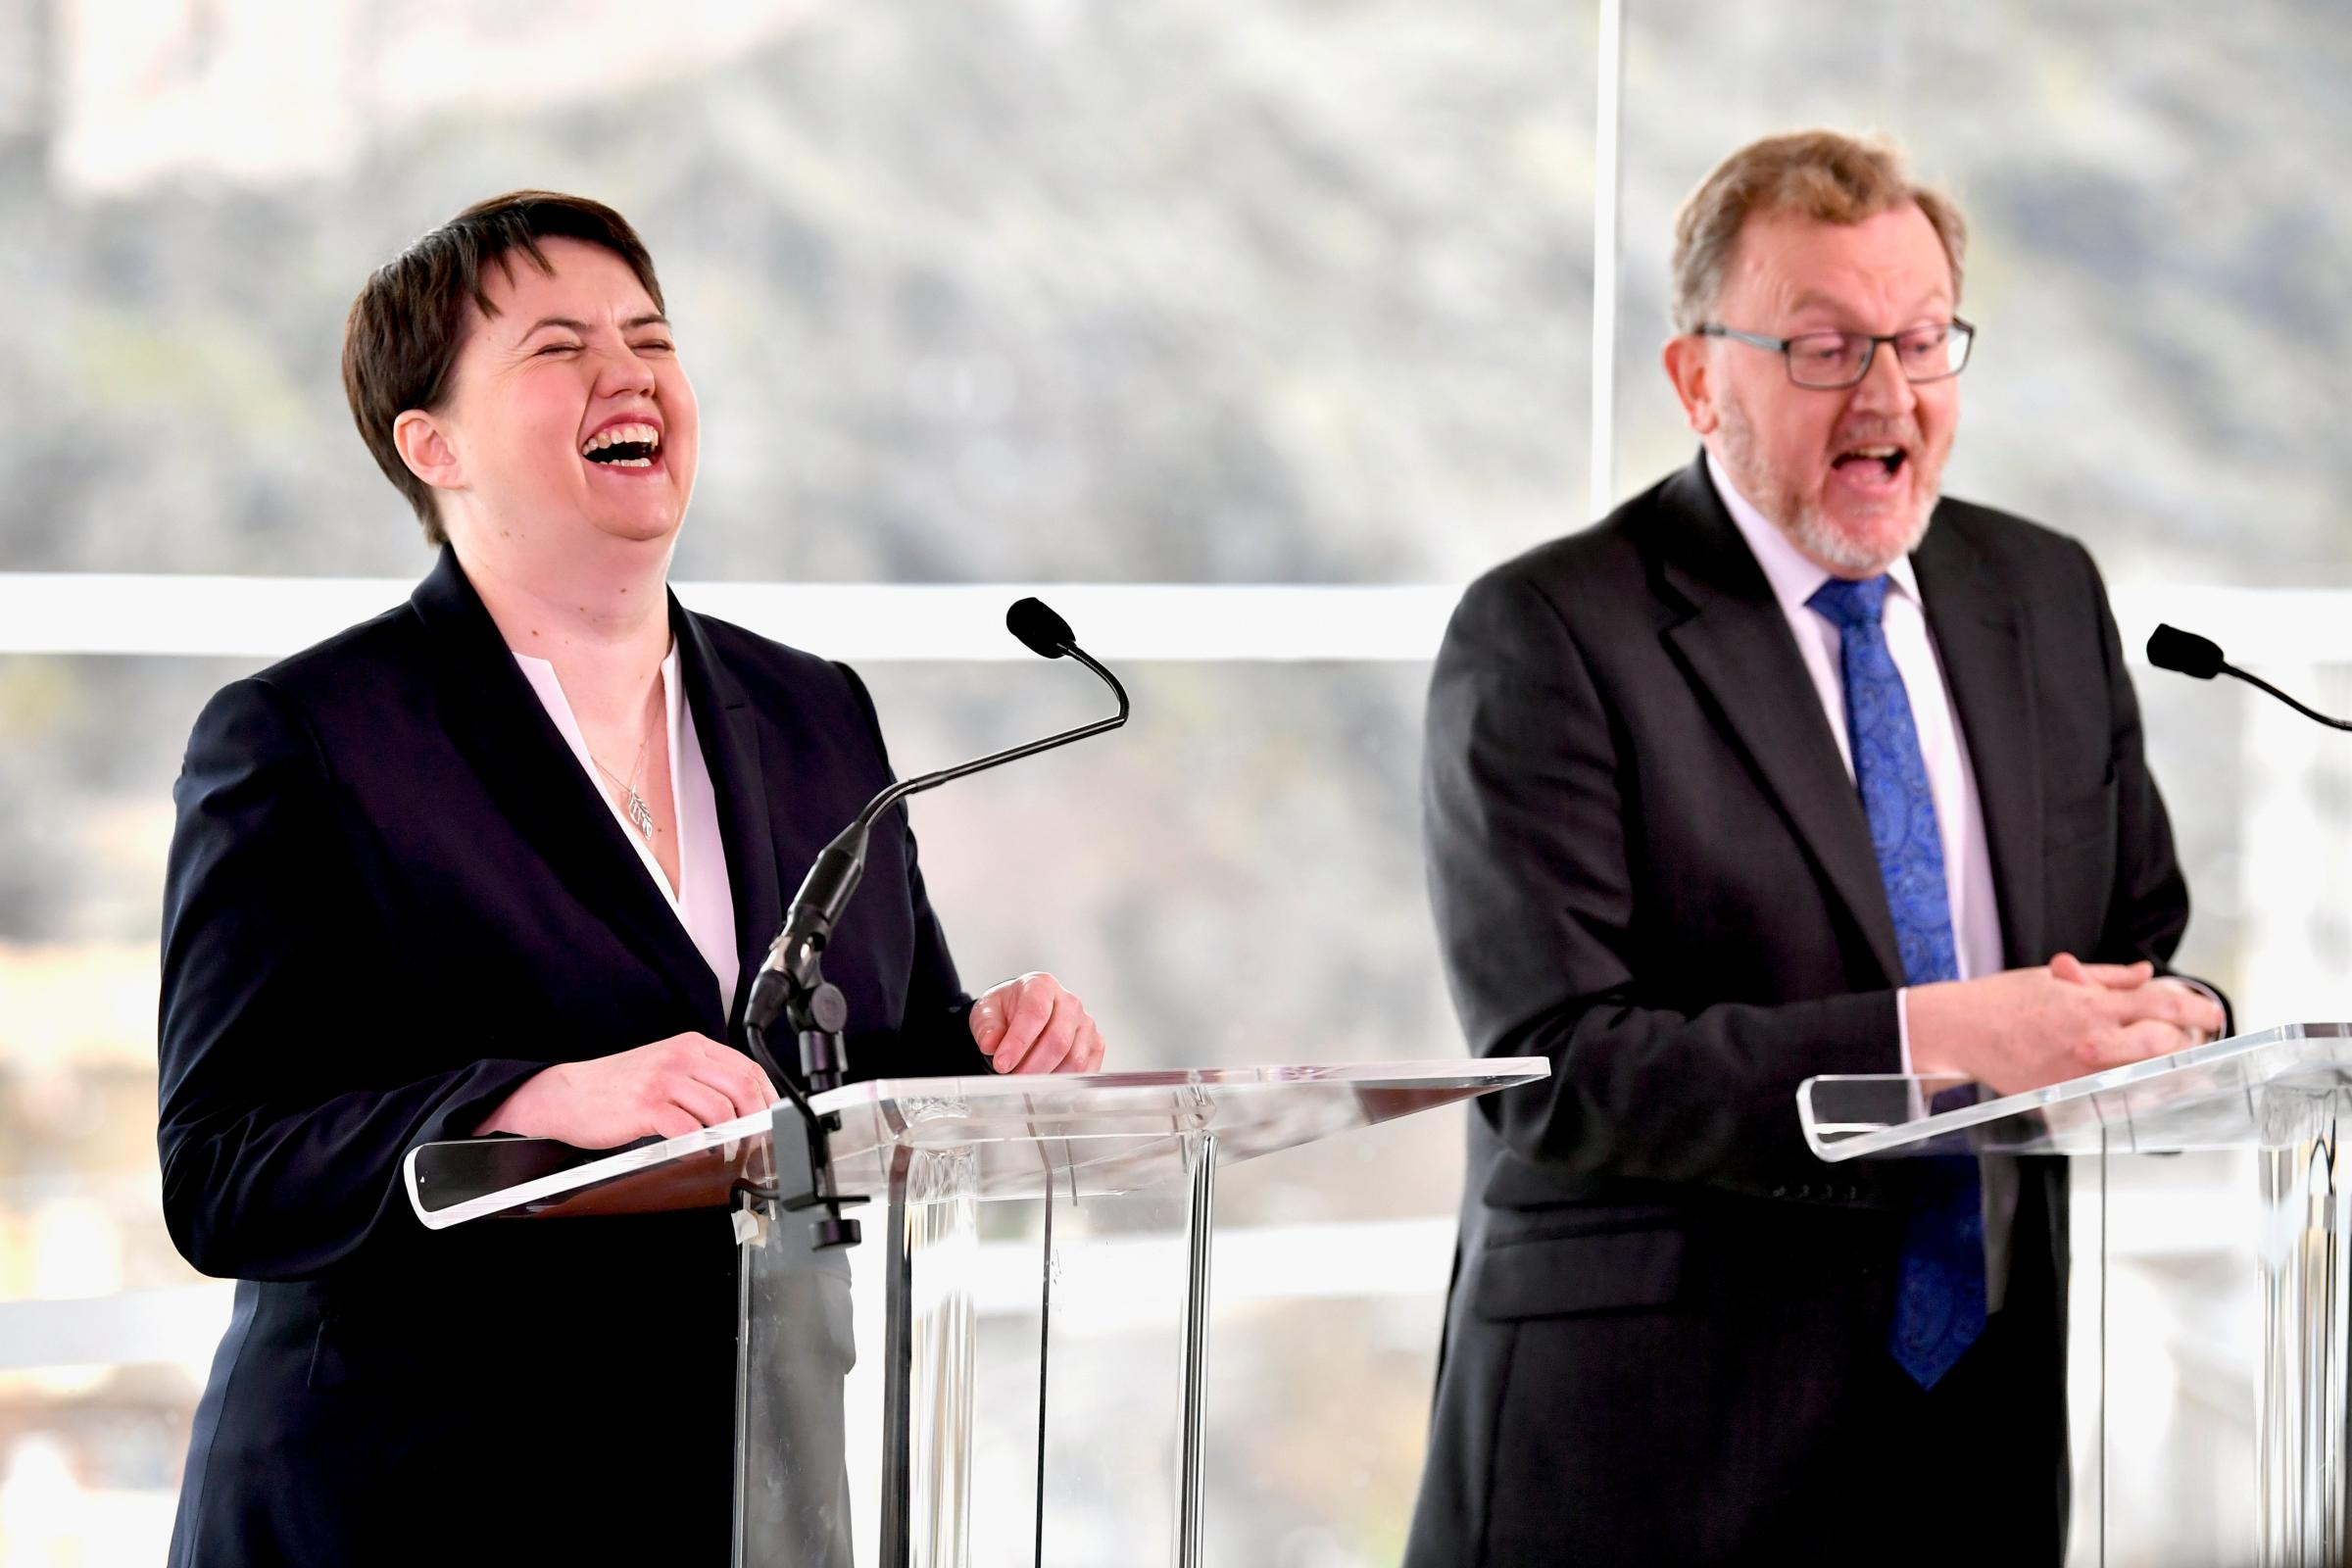 Were Ruth Davidson and David Mundell kept in the dark by their own Government?